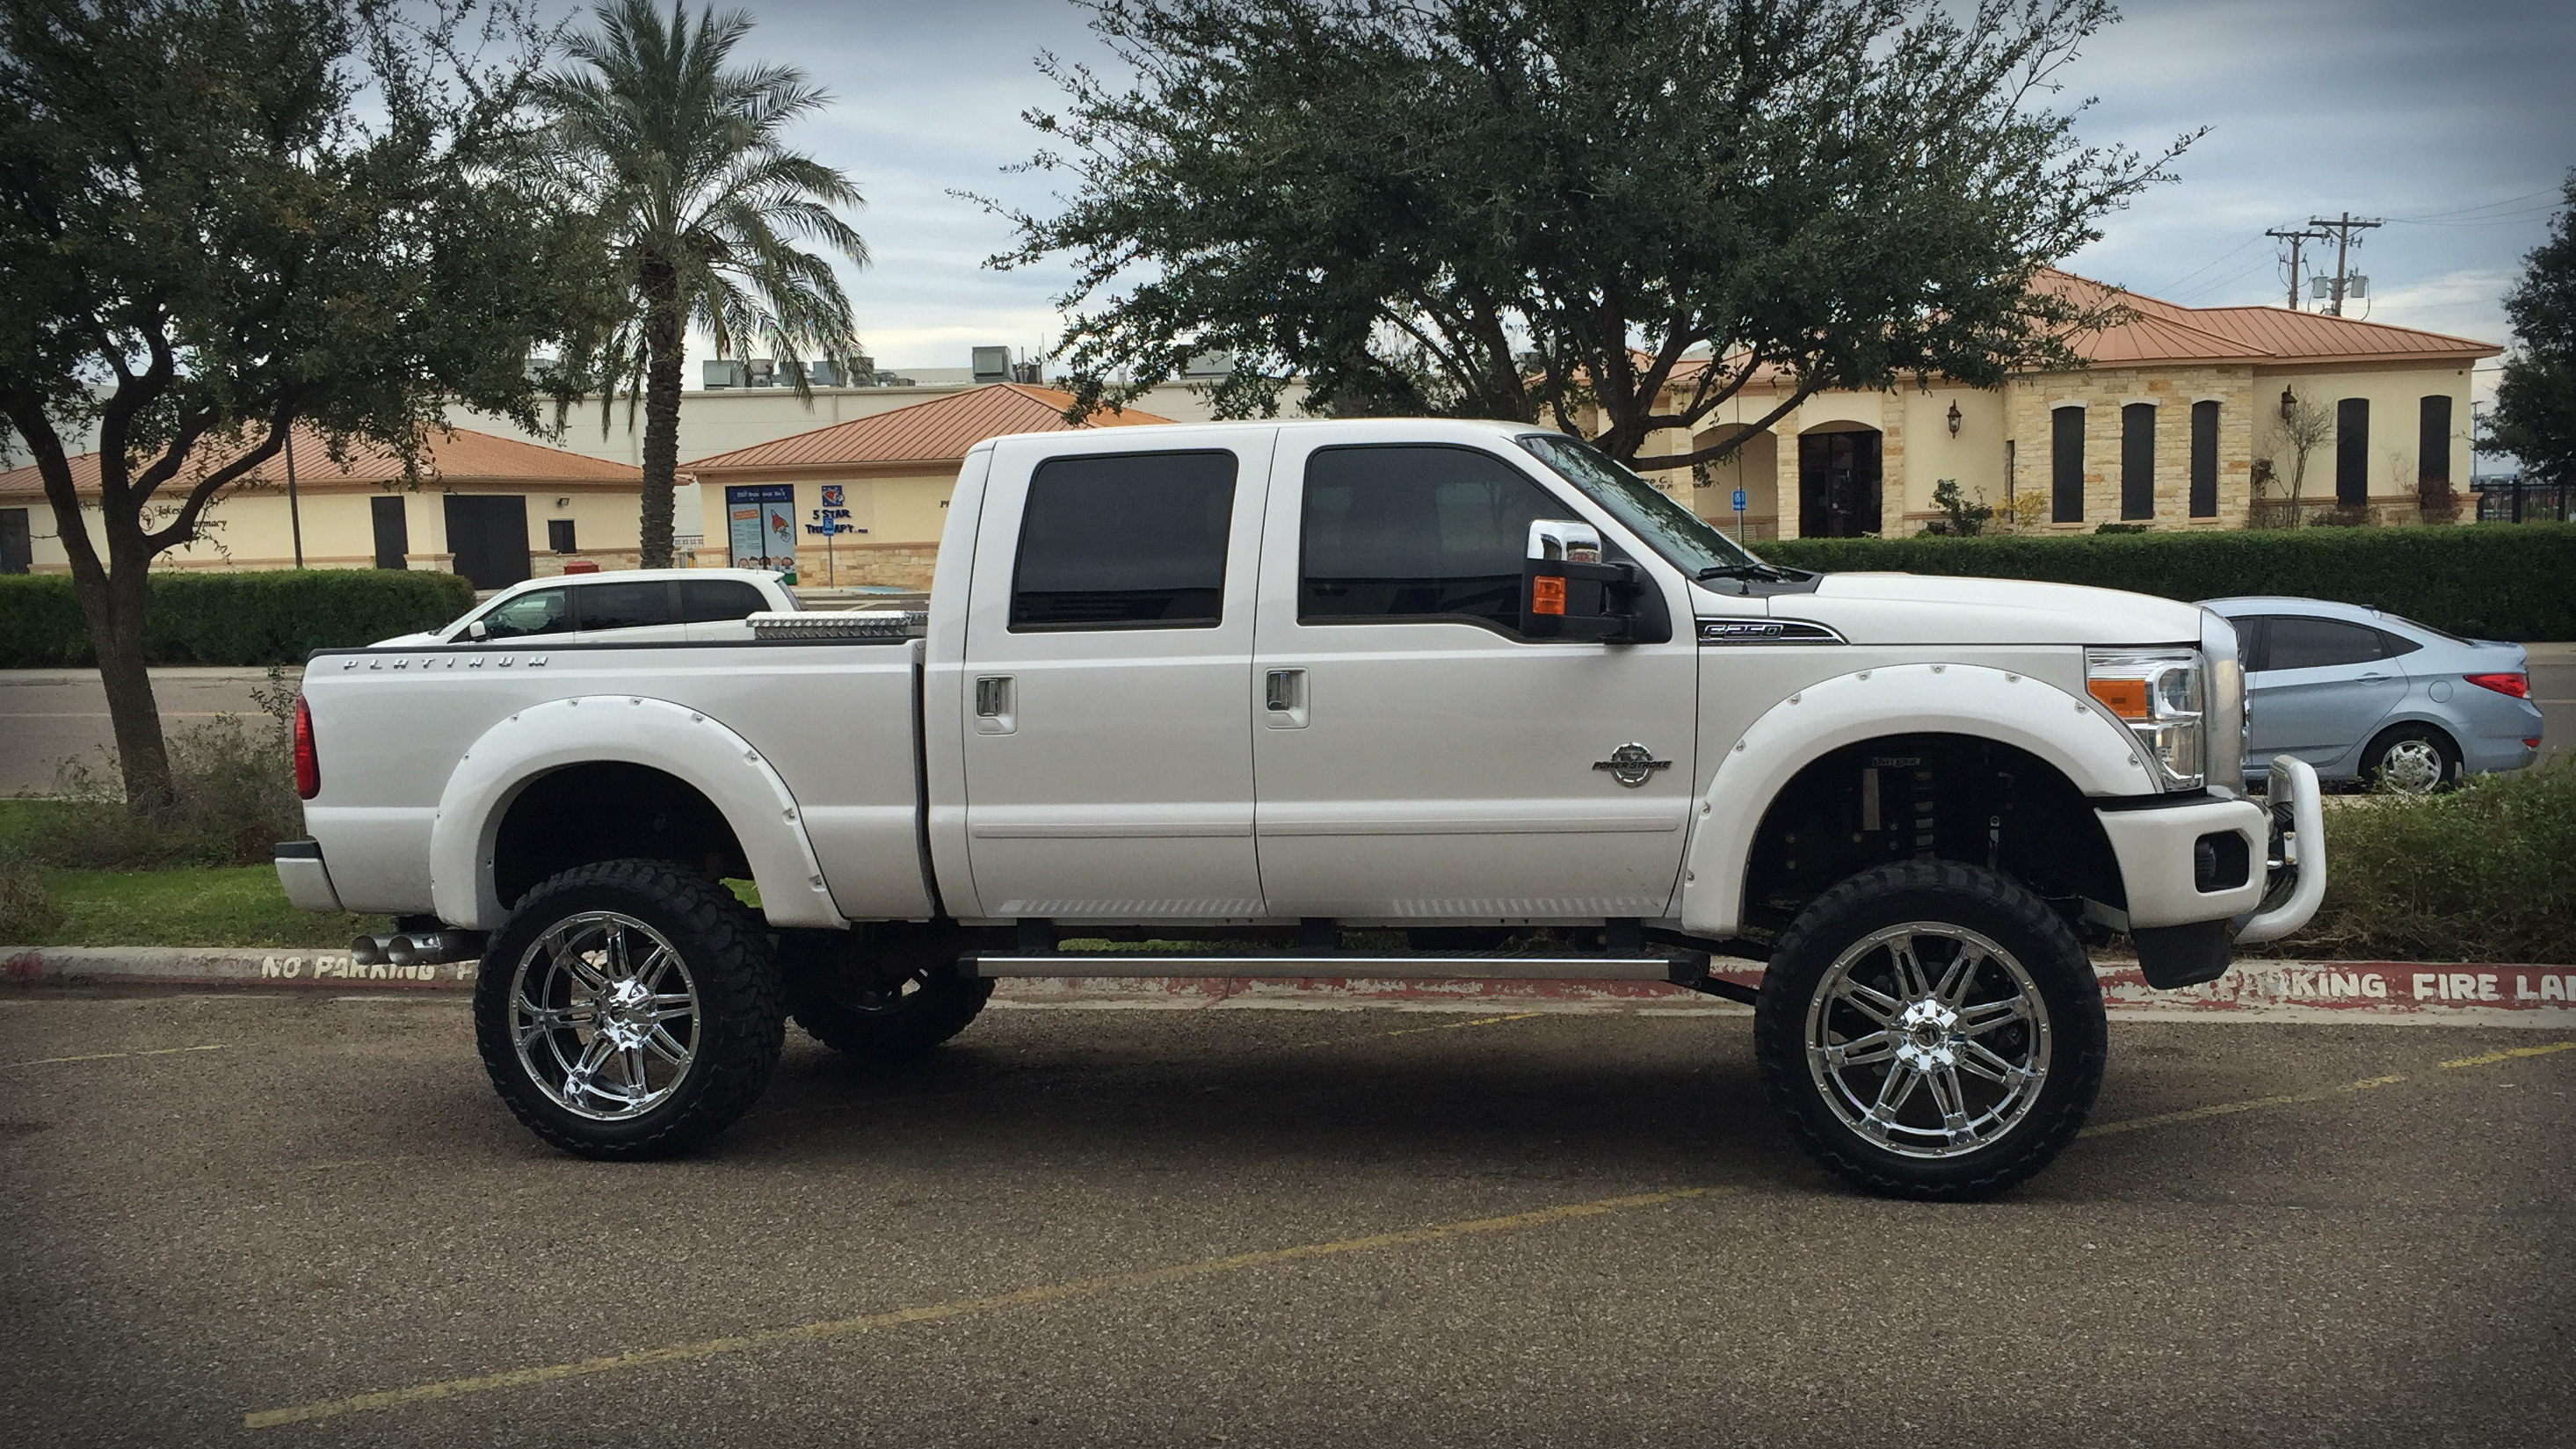 15 F250 8 Fabtech Coilover 38x1350x24 on 24x12 Fuel Hostages